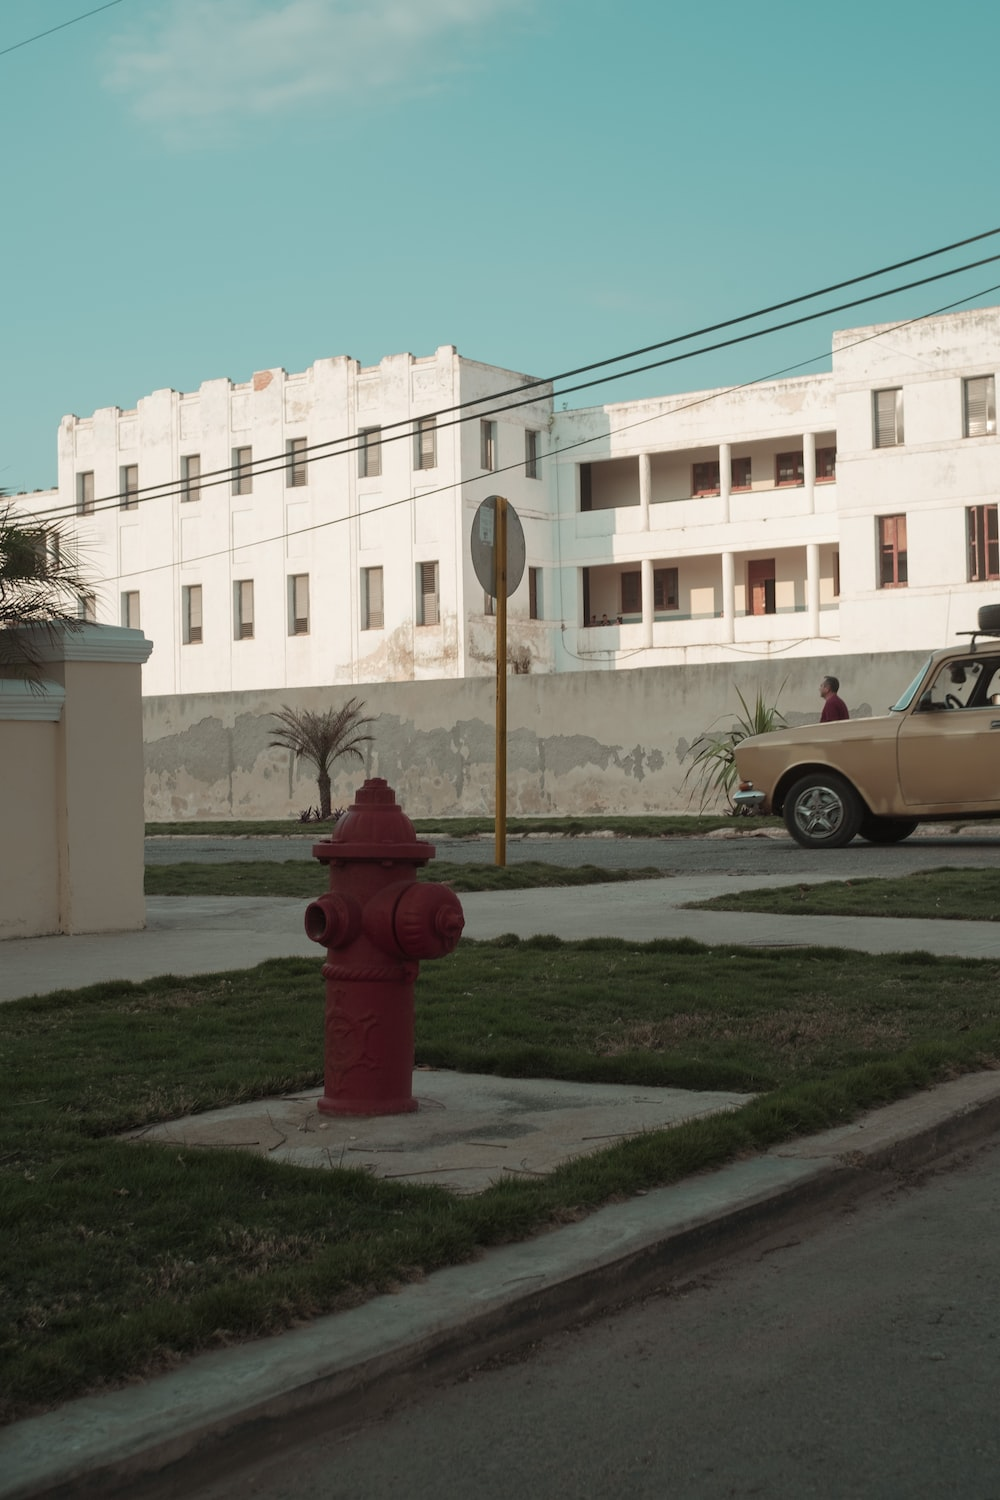 red fire hydrant near white concrete building during daytime